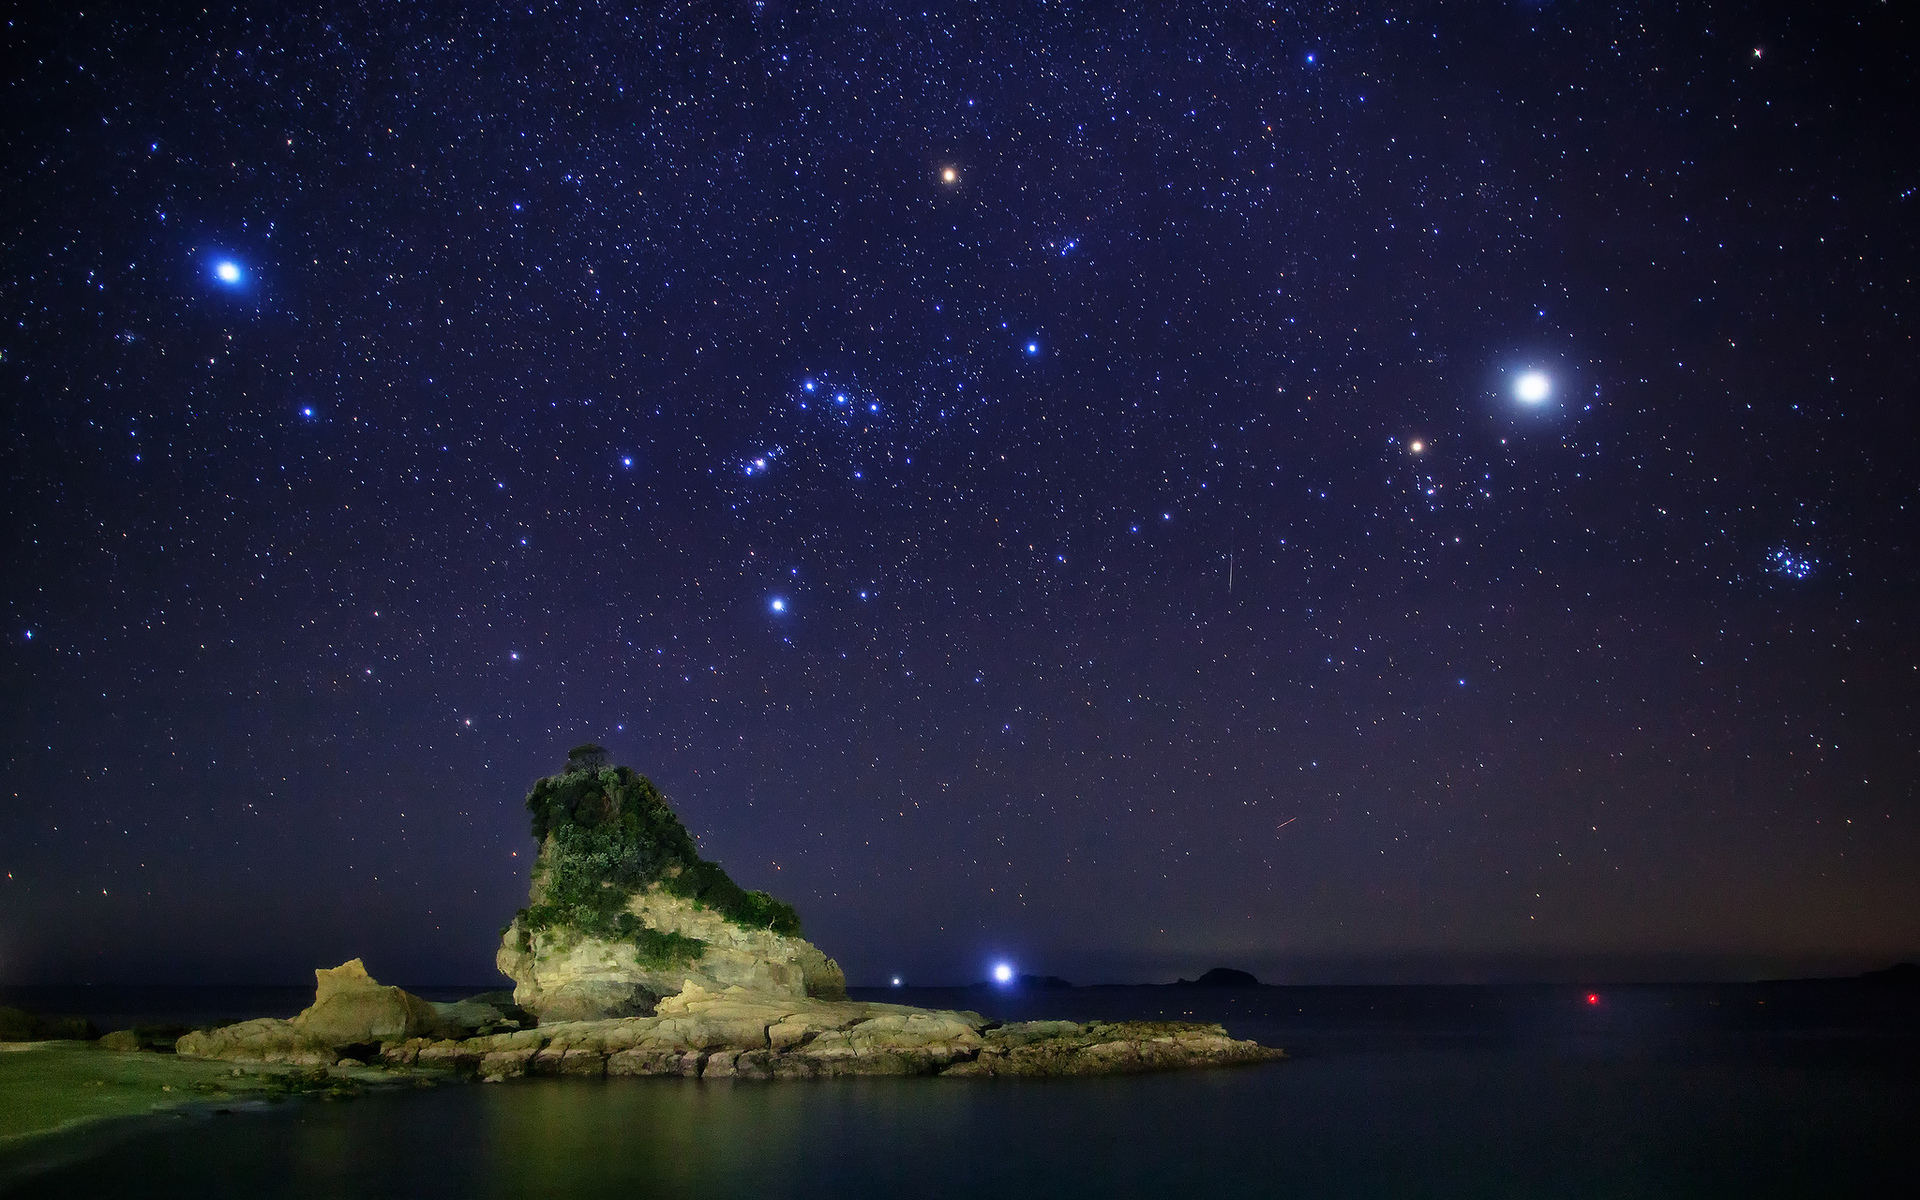 1 orion constellation hd wallpapers background images for Fond d ecran etoile